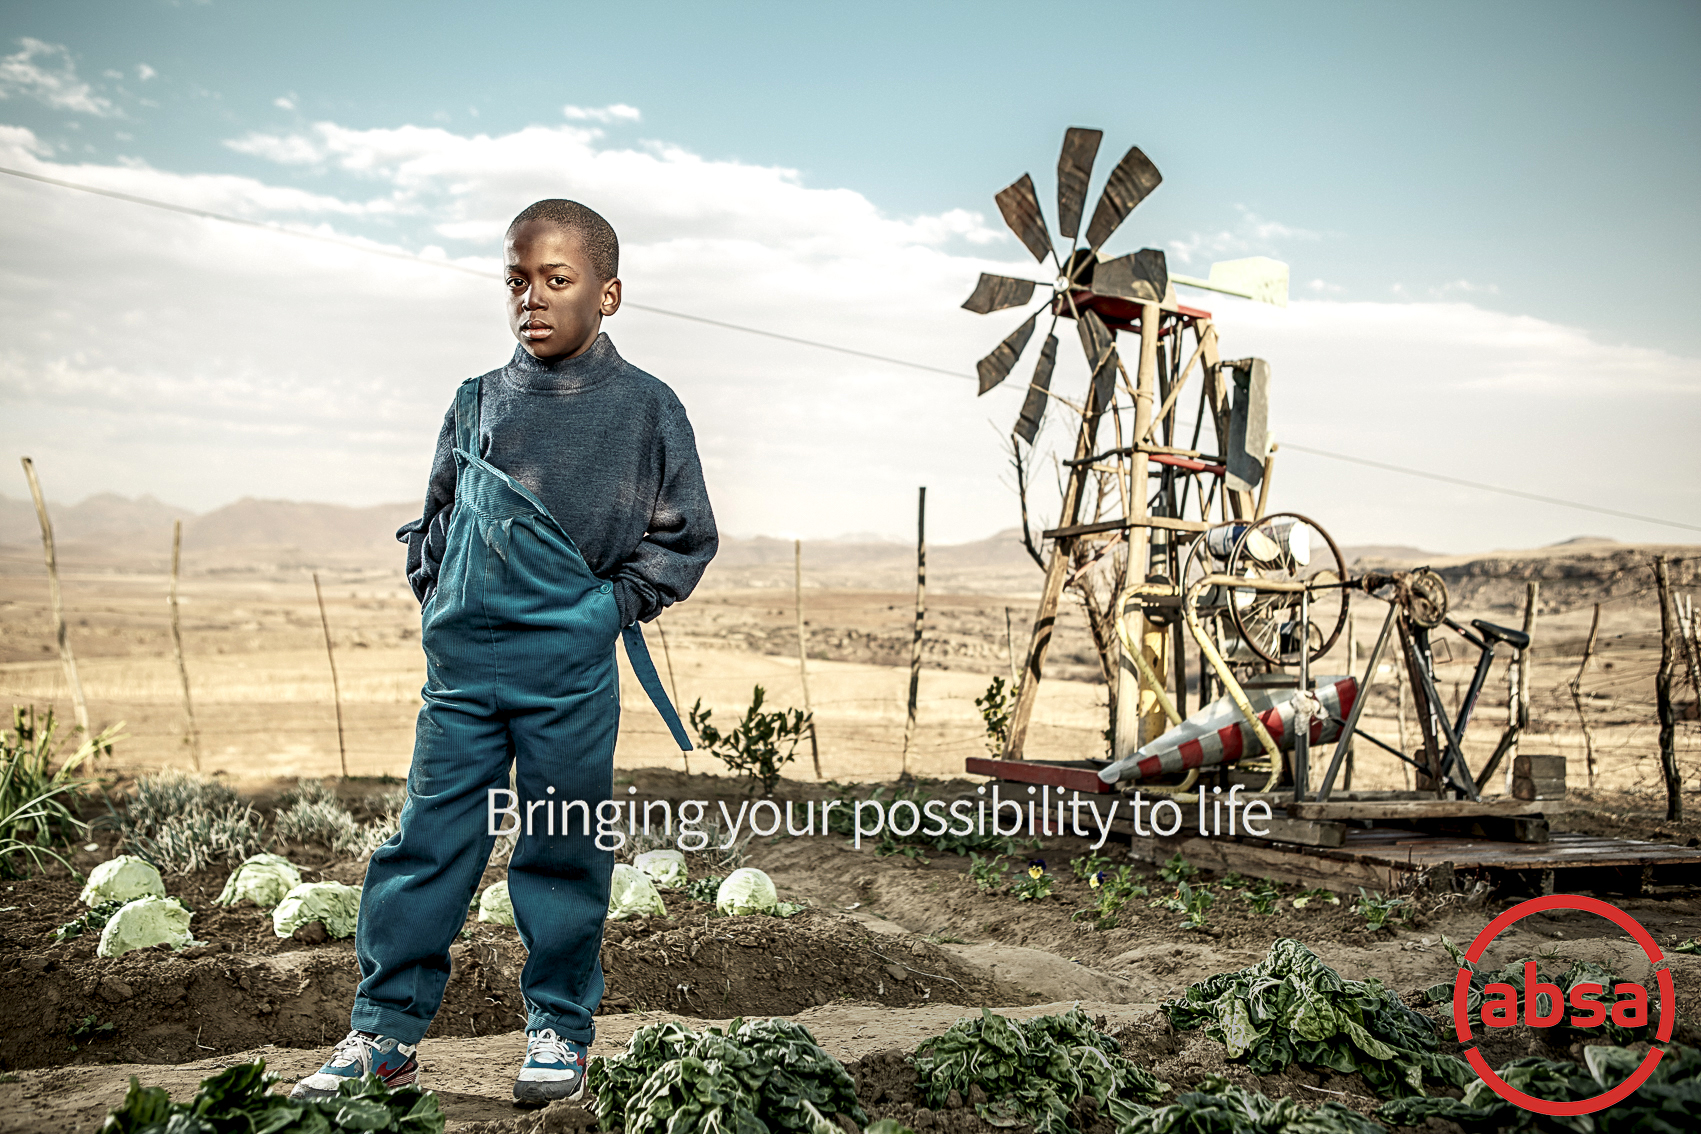 ABSA - Corporate Banking Campaign